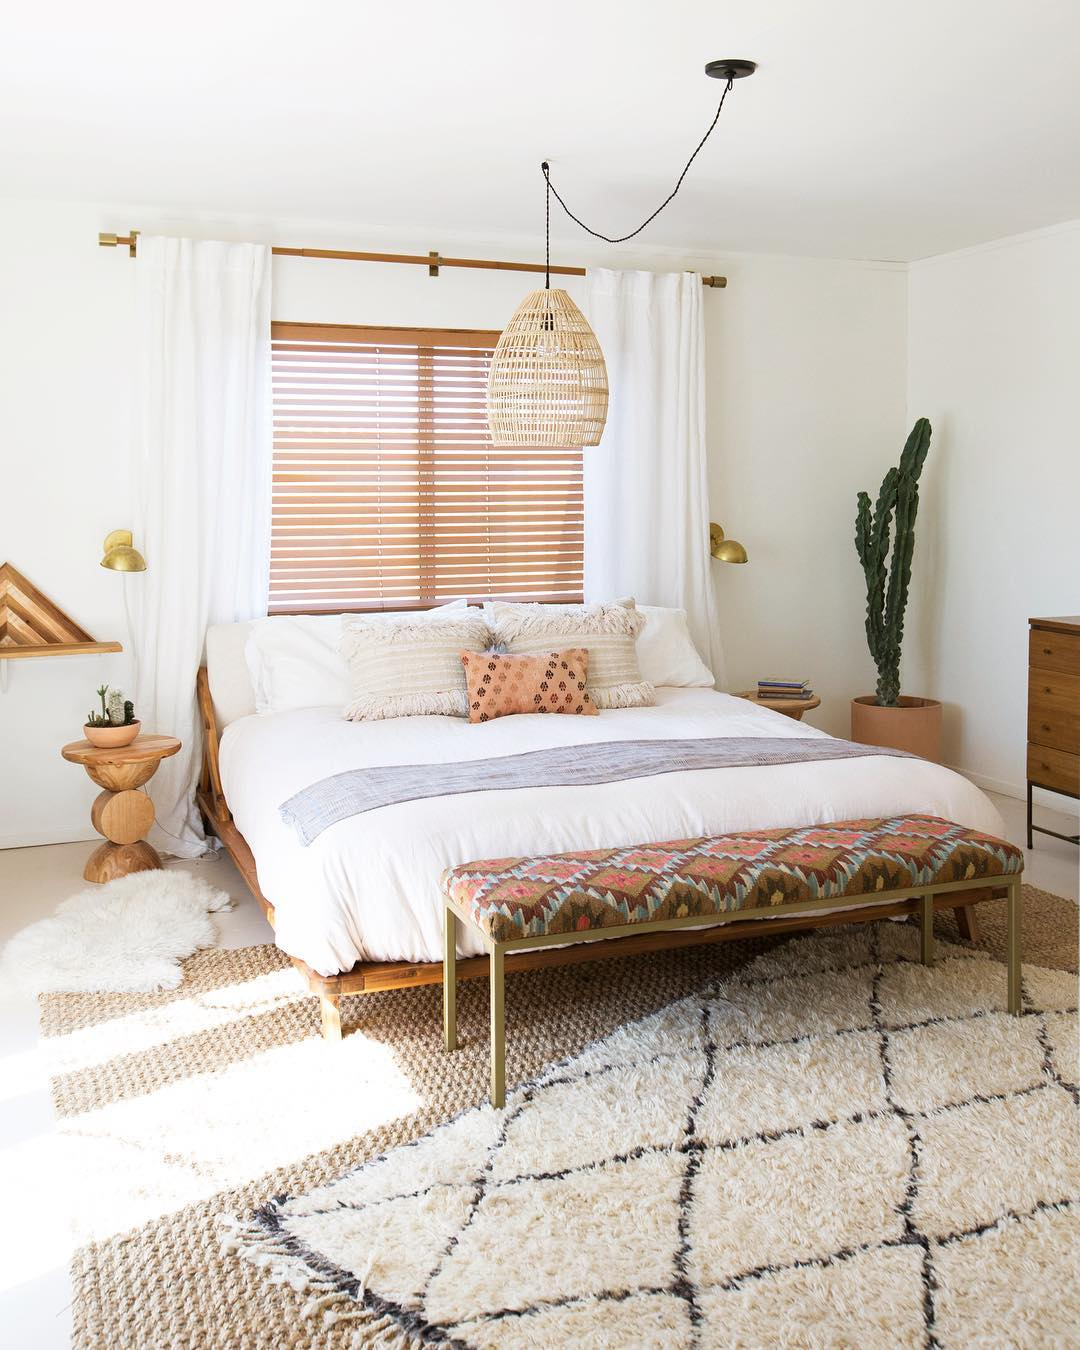 Urban Outfitters Home Ideas Inspired by the Desert